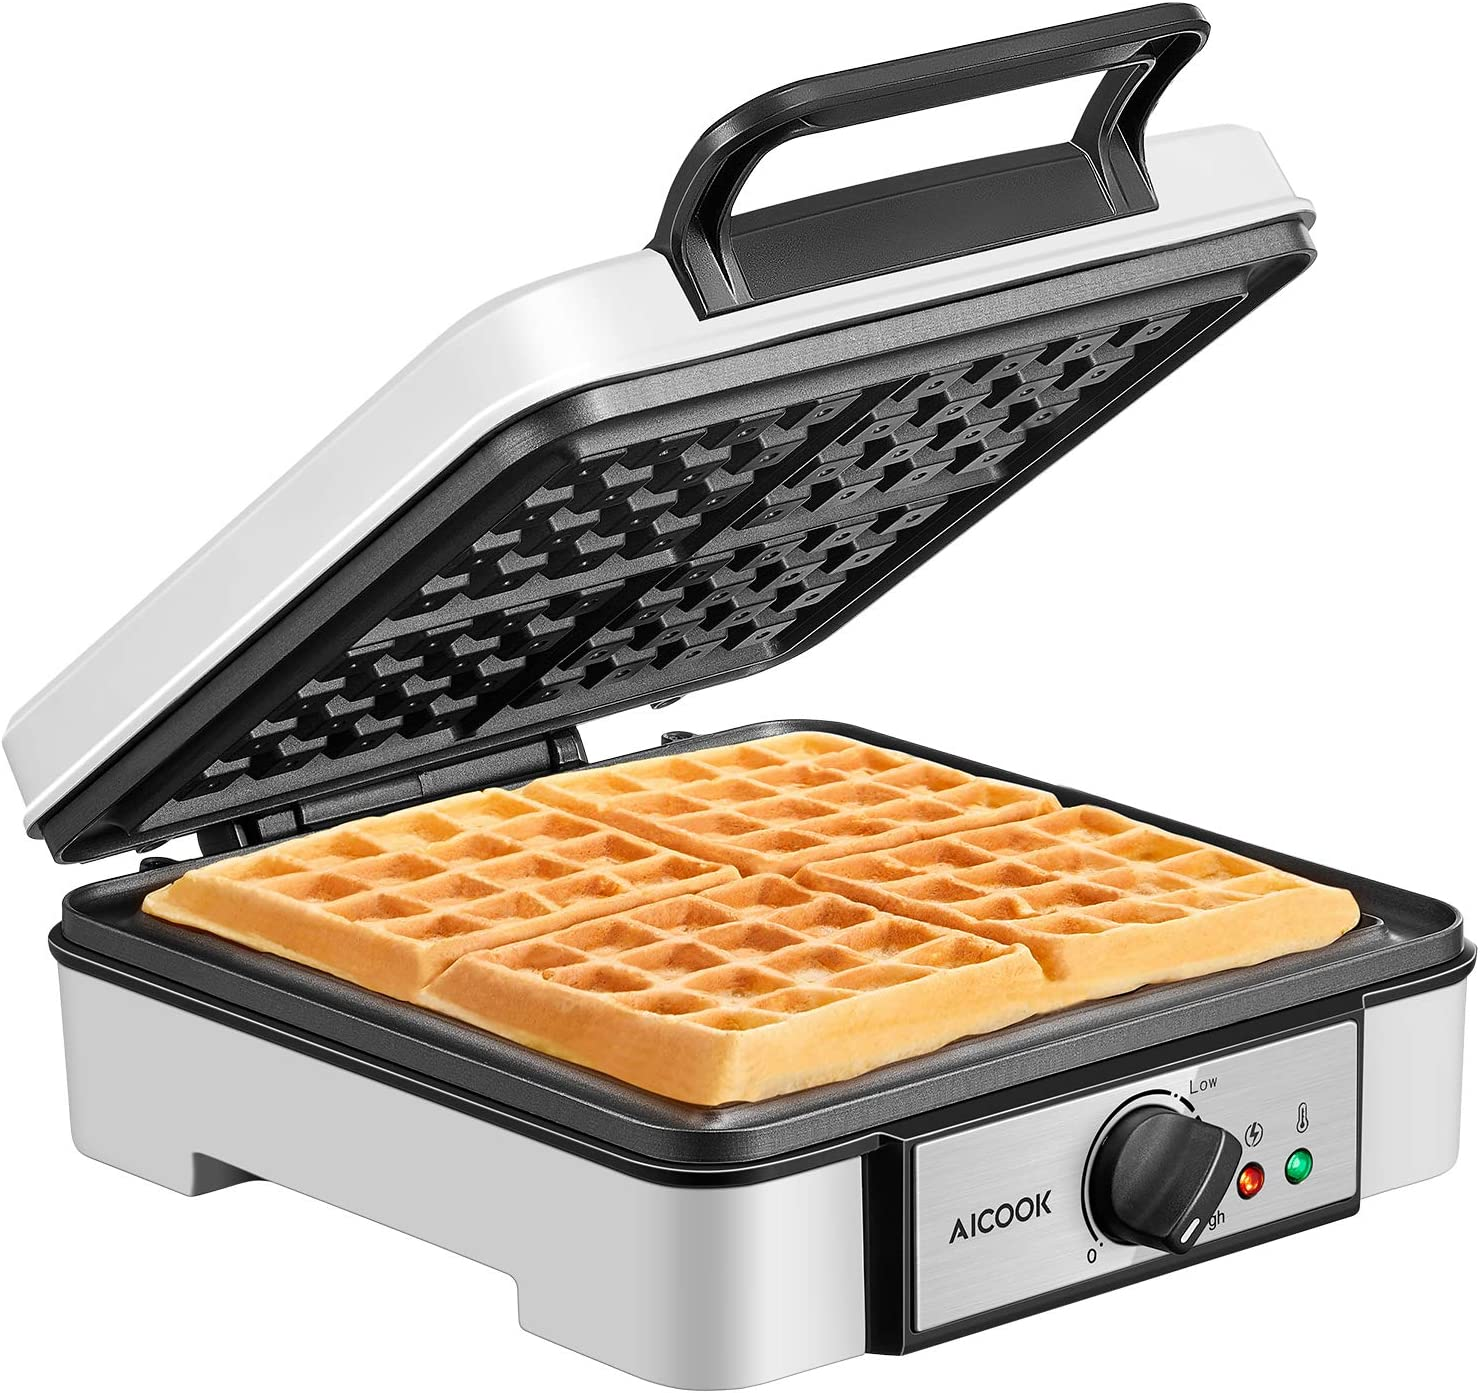 Belgian Waffle Maker Aicook, 4-Slice Waffle Iron 1200W with Temperature Control, Non-Stick, Electric Waffle Machine made of Anti-scald Phenolic Plastic, Easy to Use, Clean and Store